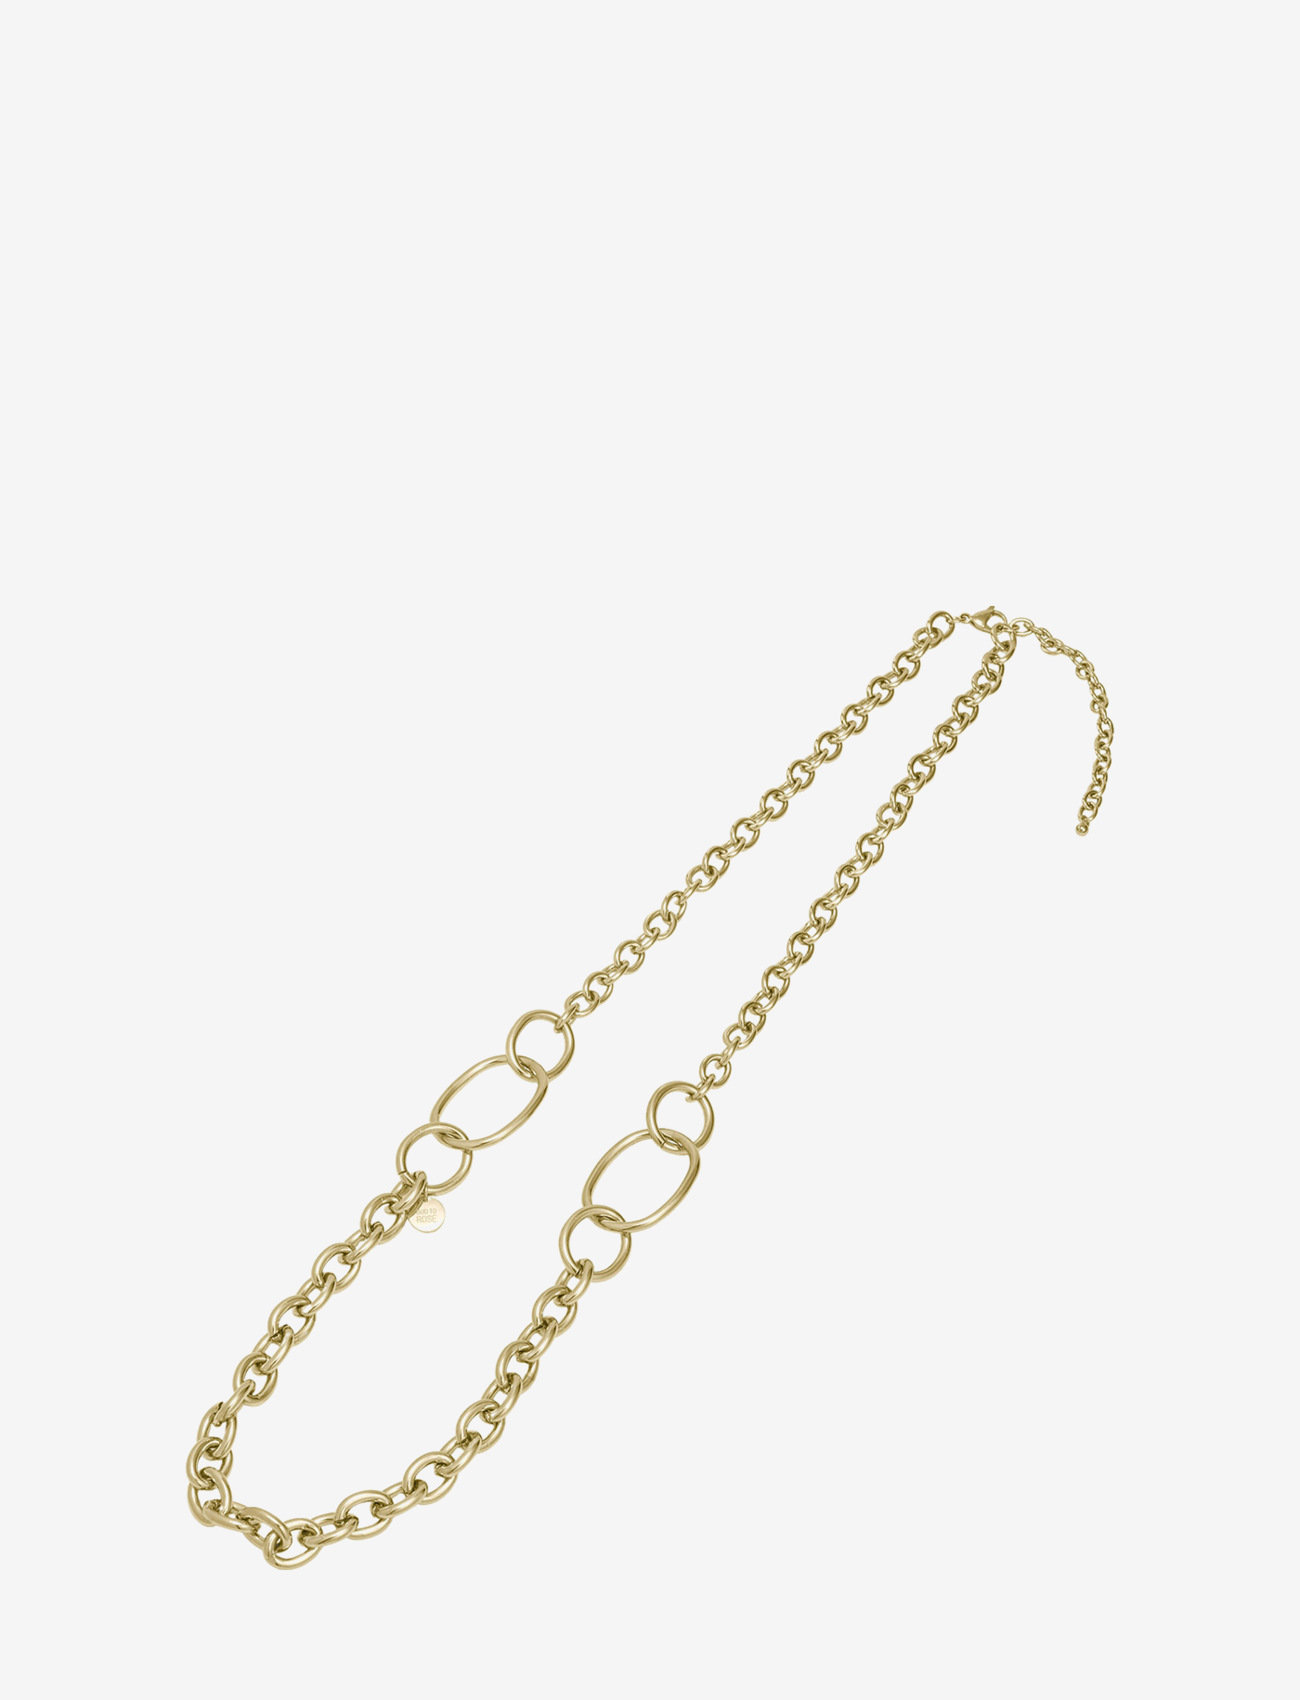 Bud to rose - Garbo Long Necklace Gold - kettingen  - gold - 1